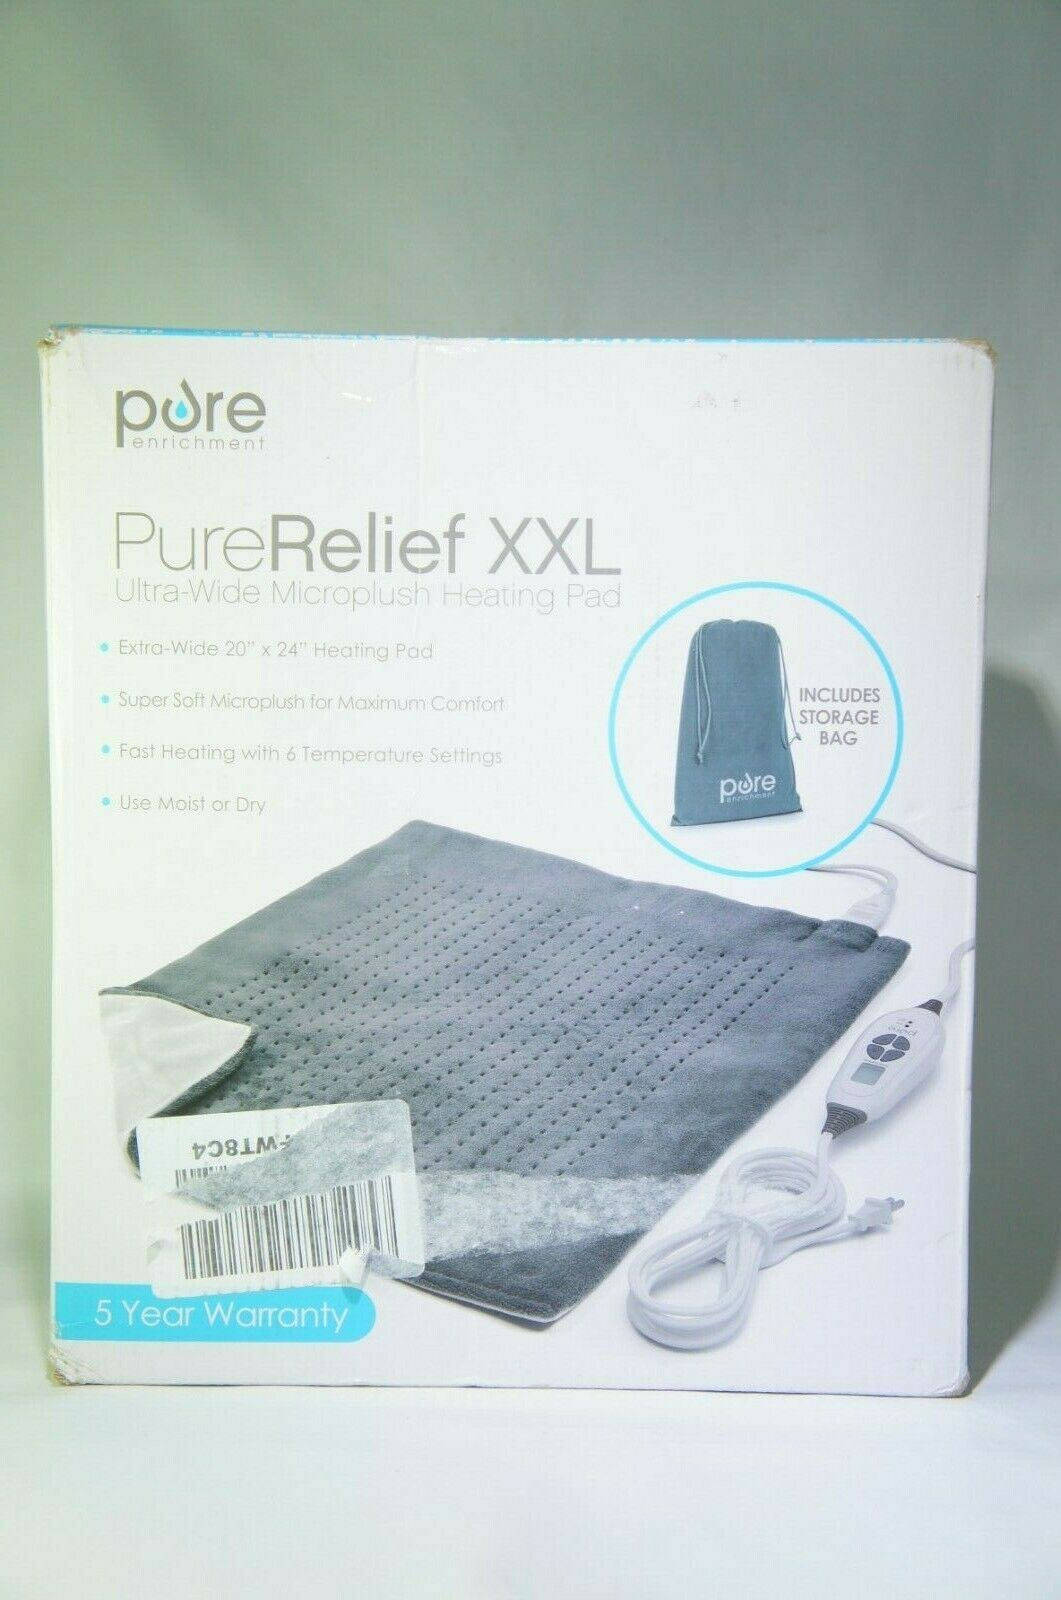 "Pure Enrichment PureRelief XXL Ultra-Wide Microplush Heating Pad 20"" x 24"""